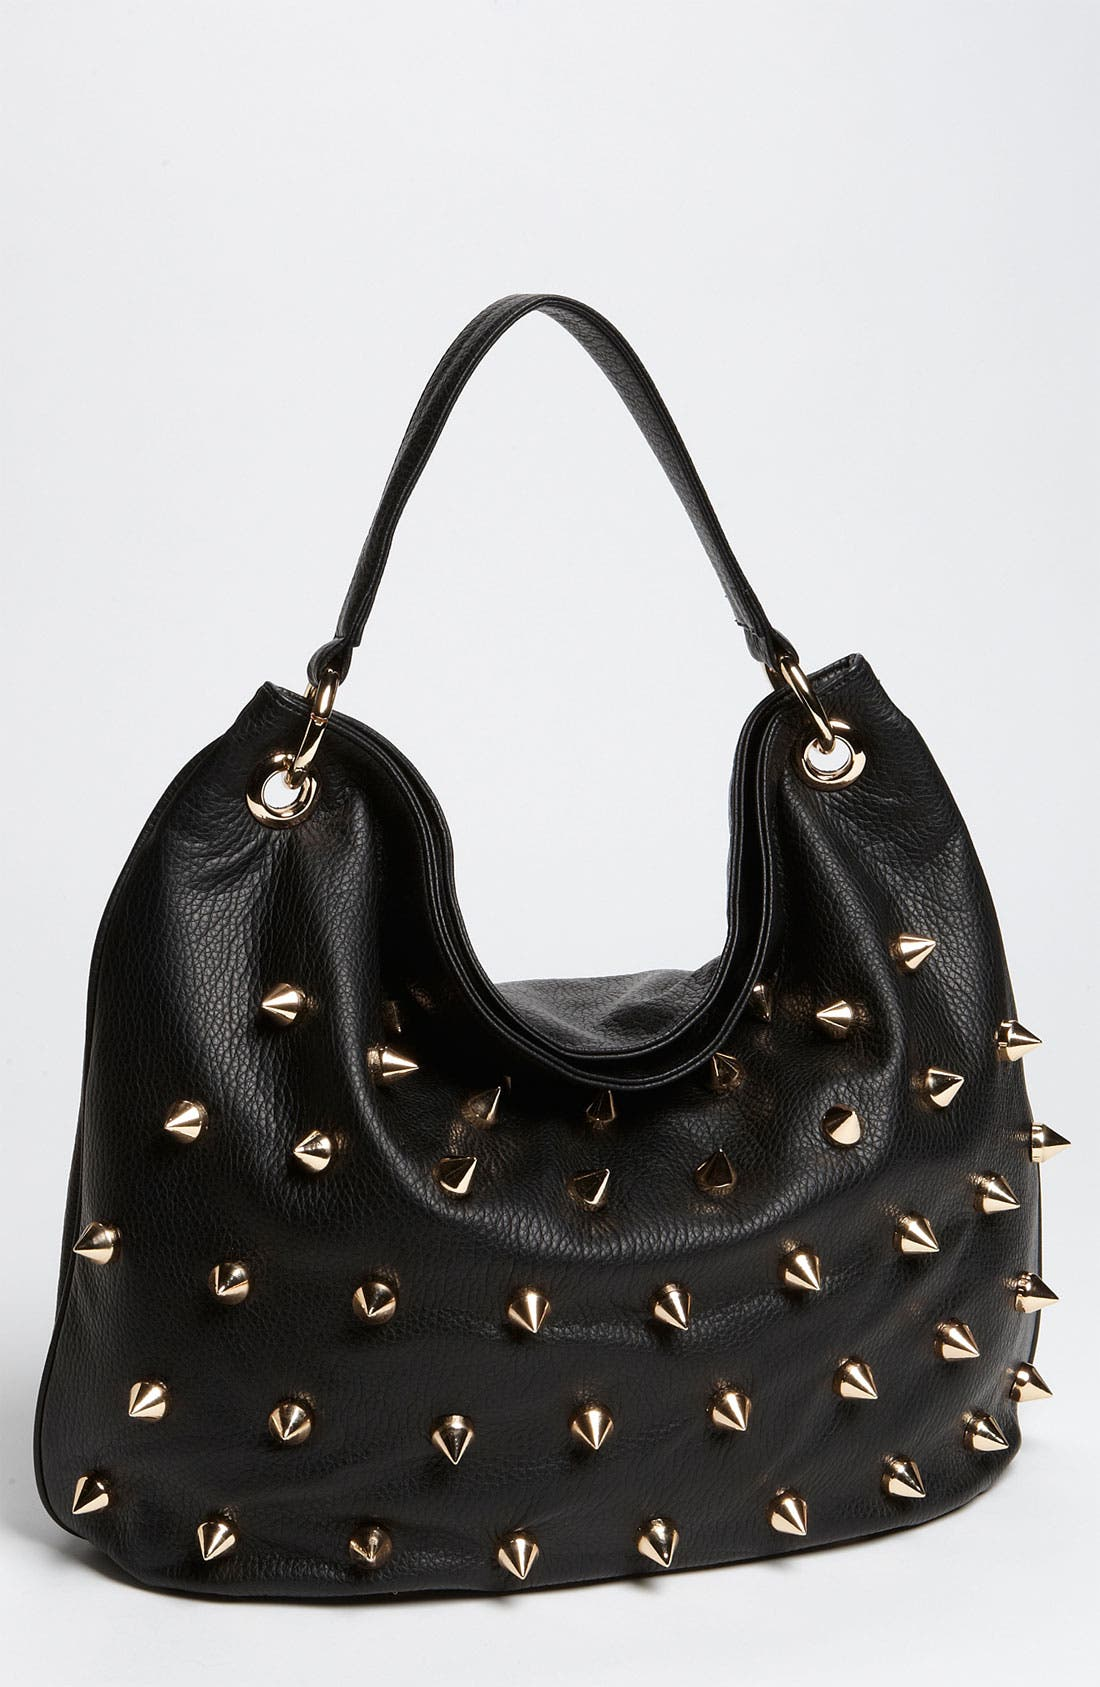 Alternate Image 1 Selected - Deux Lux 'Empire' Hobo